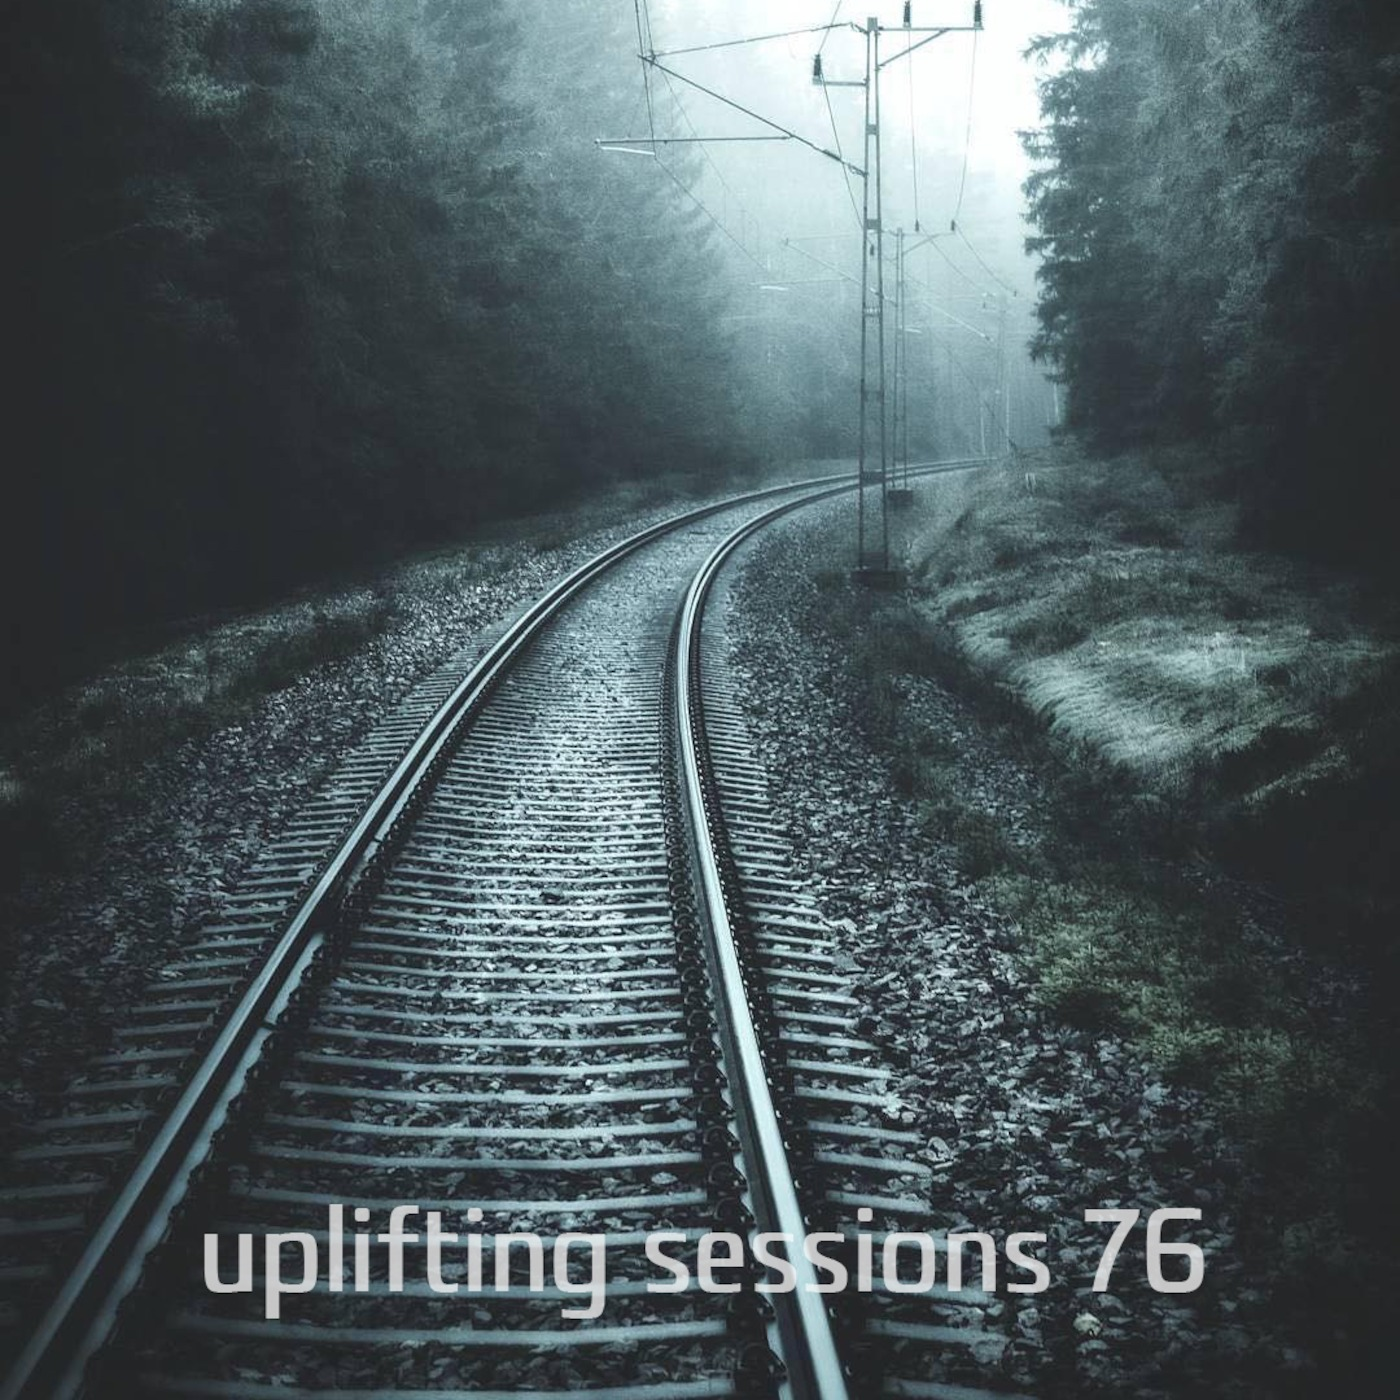 Uplifting Sessions